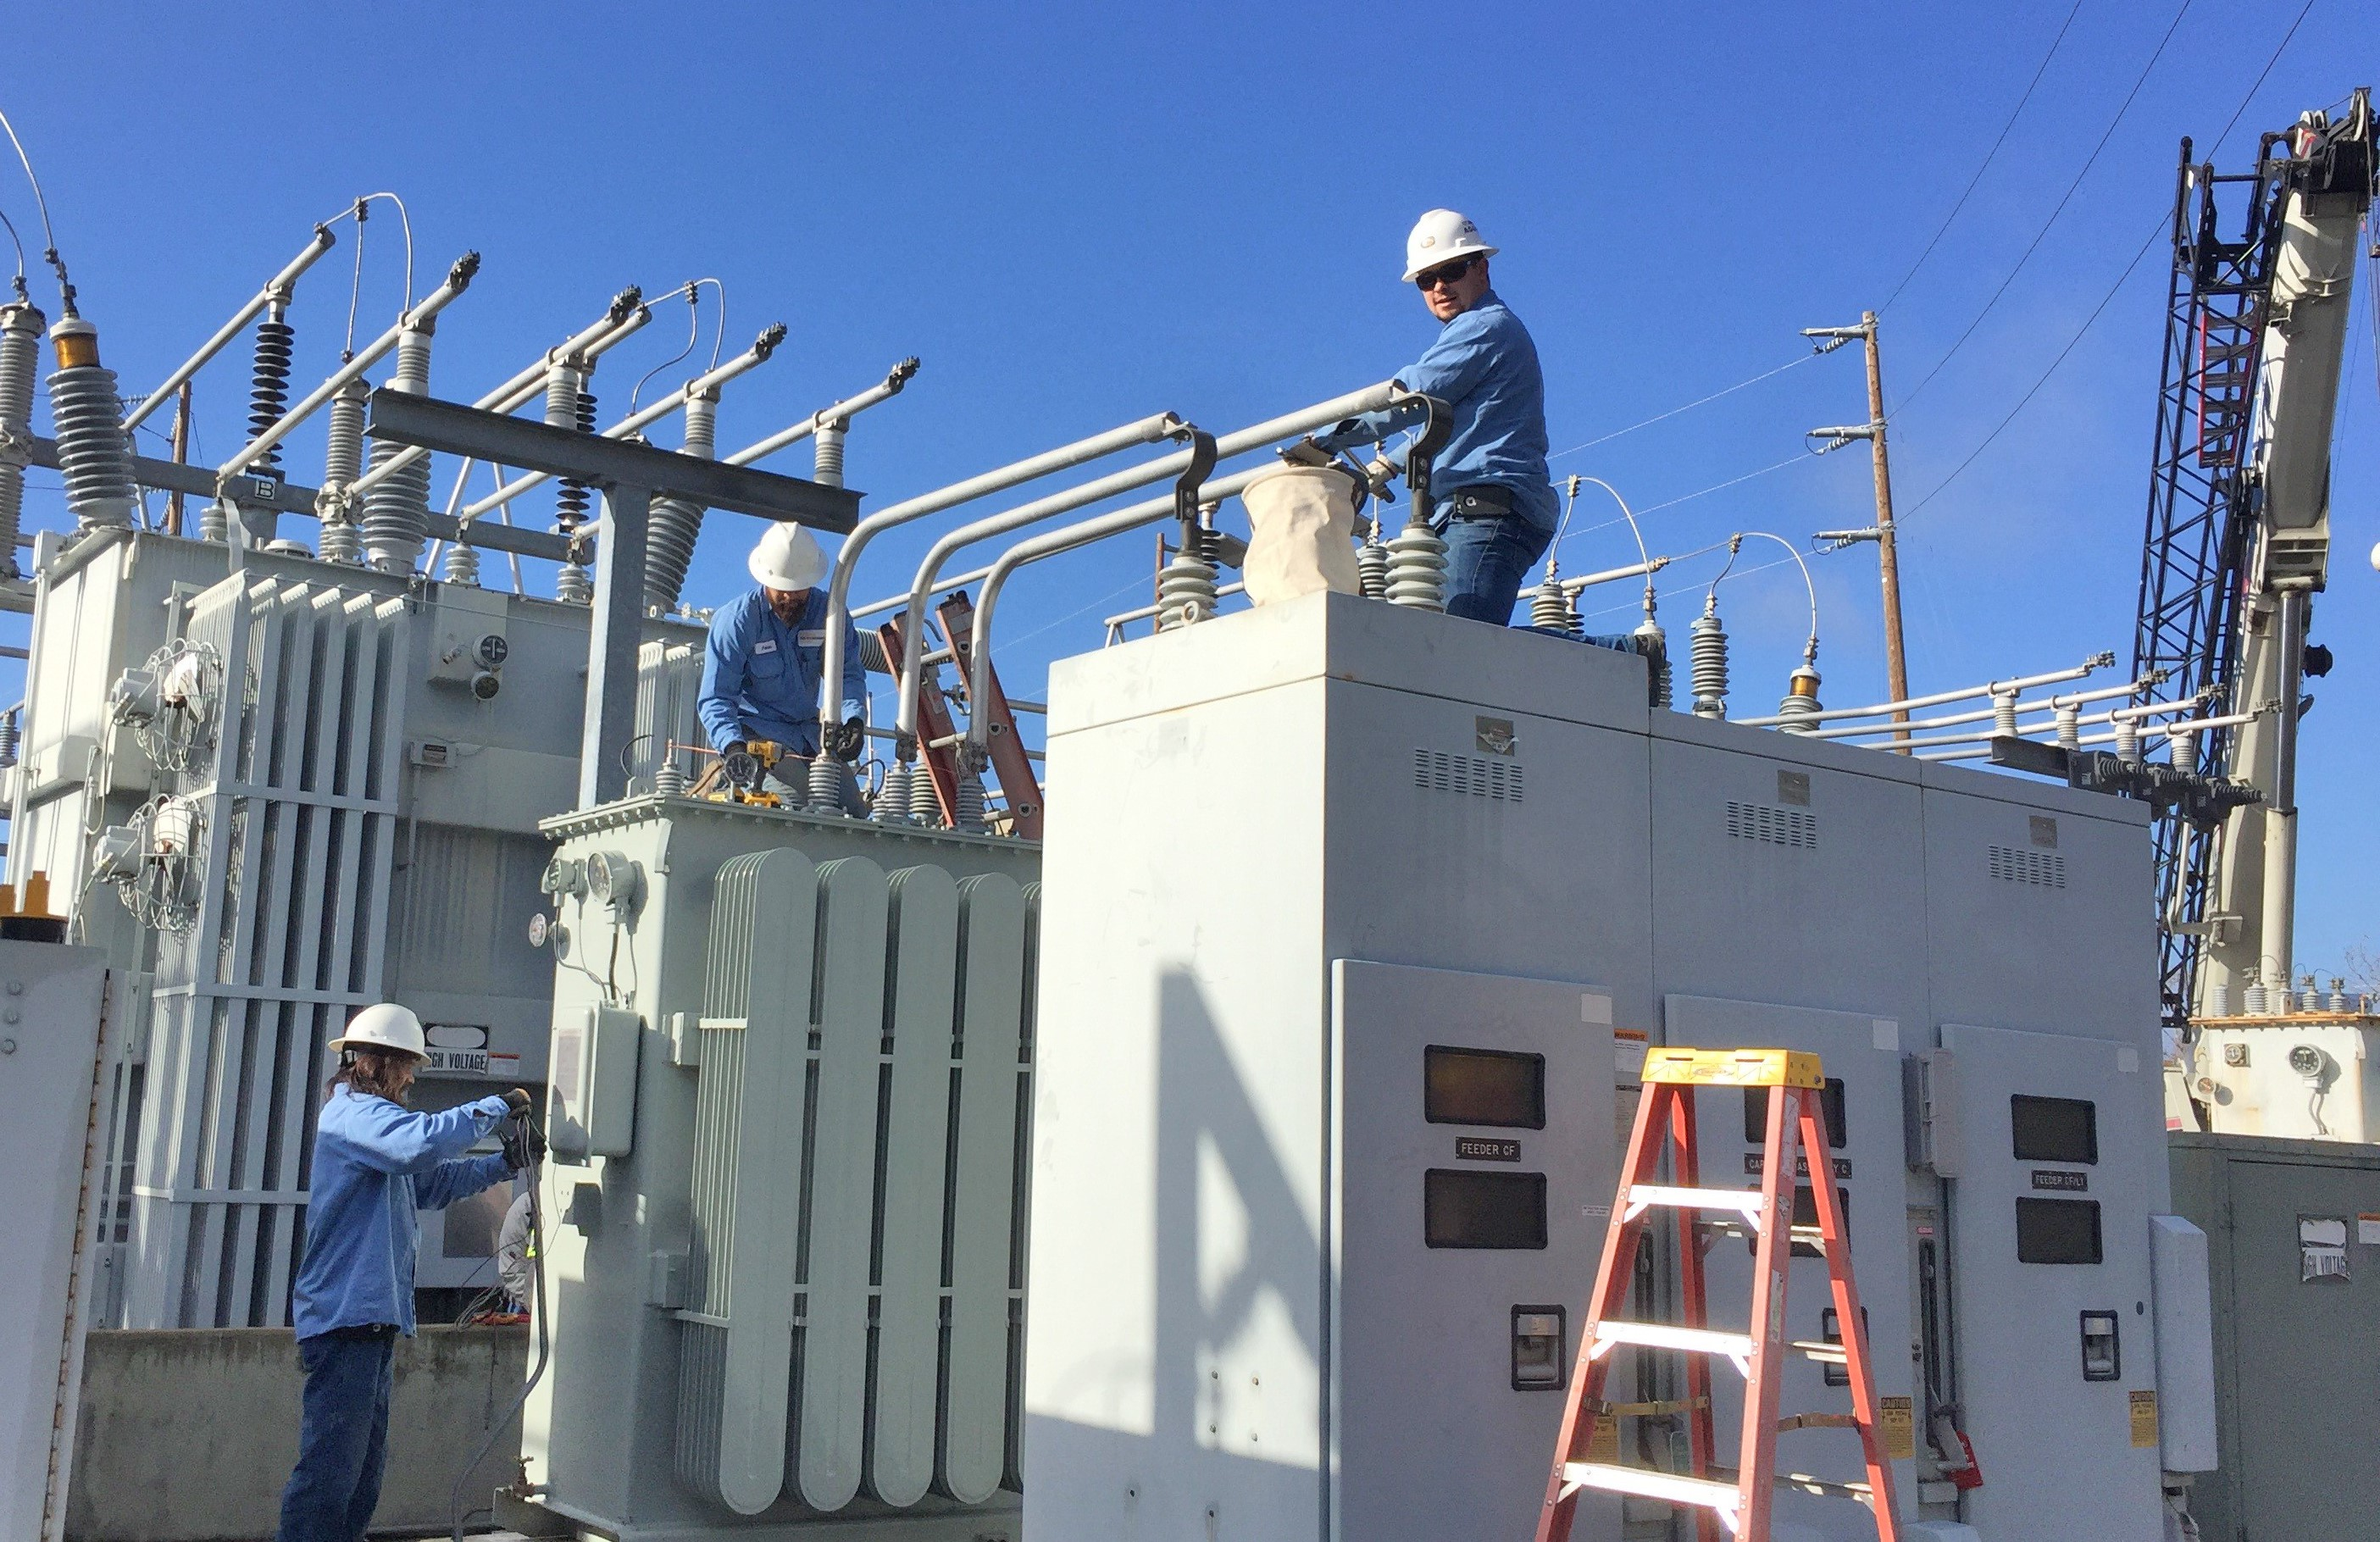 Facilities Power Substation